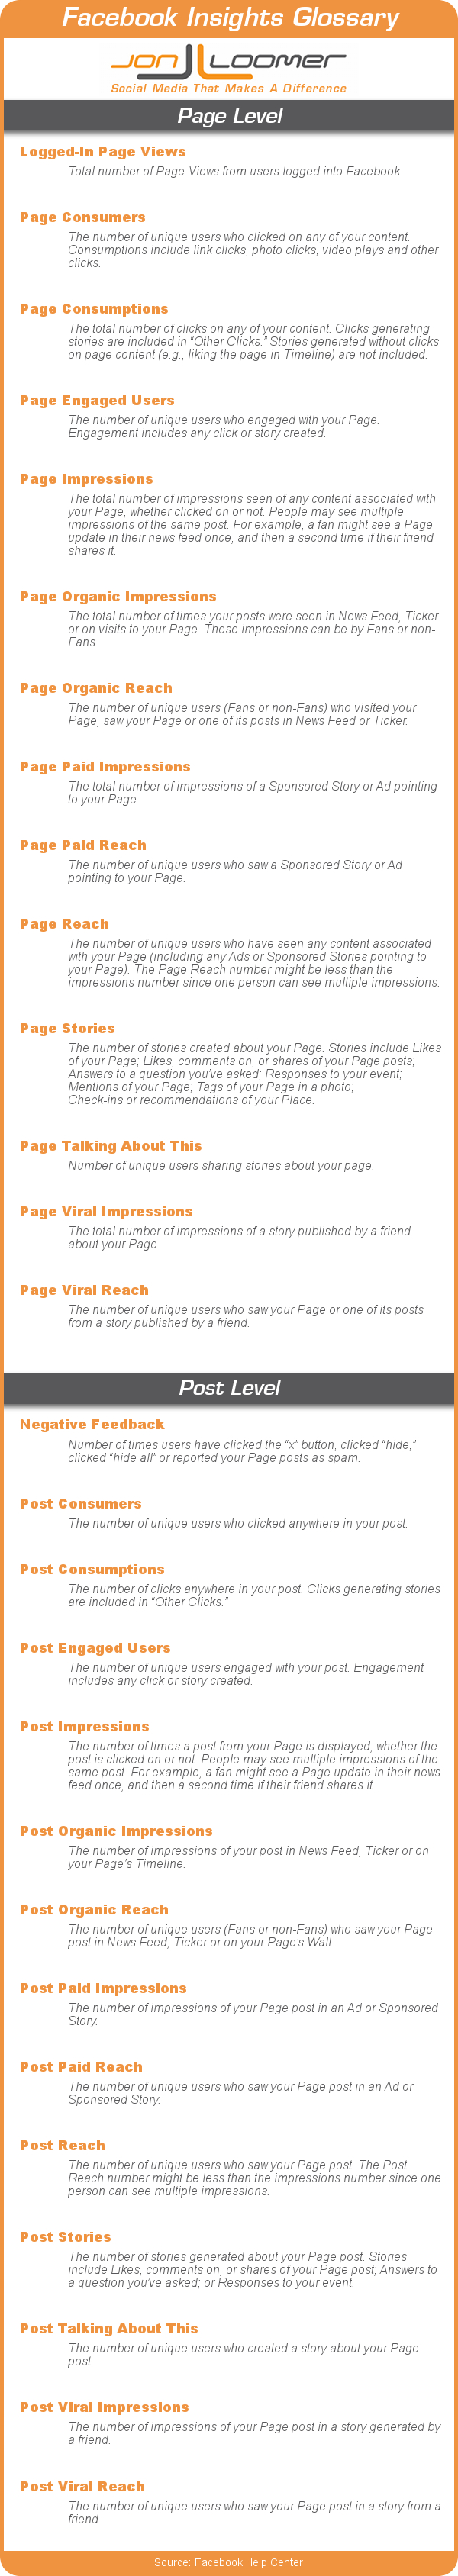 facebook insights glossary Facebook Insights Glossary of Terms [Infographic]